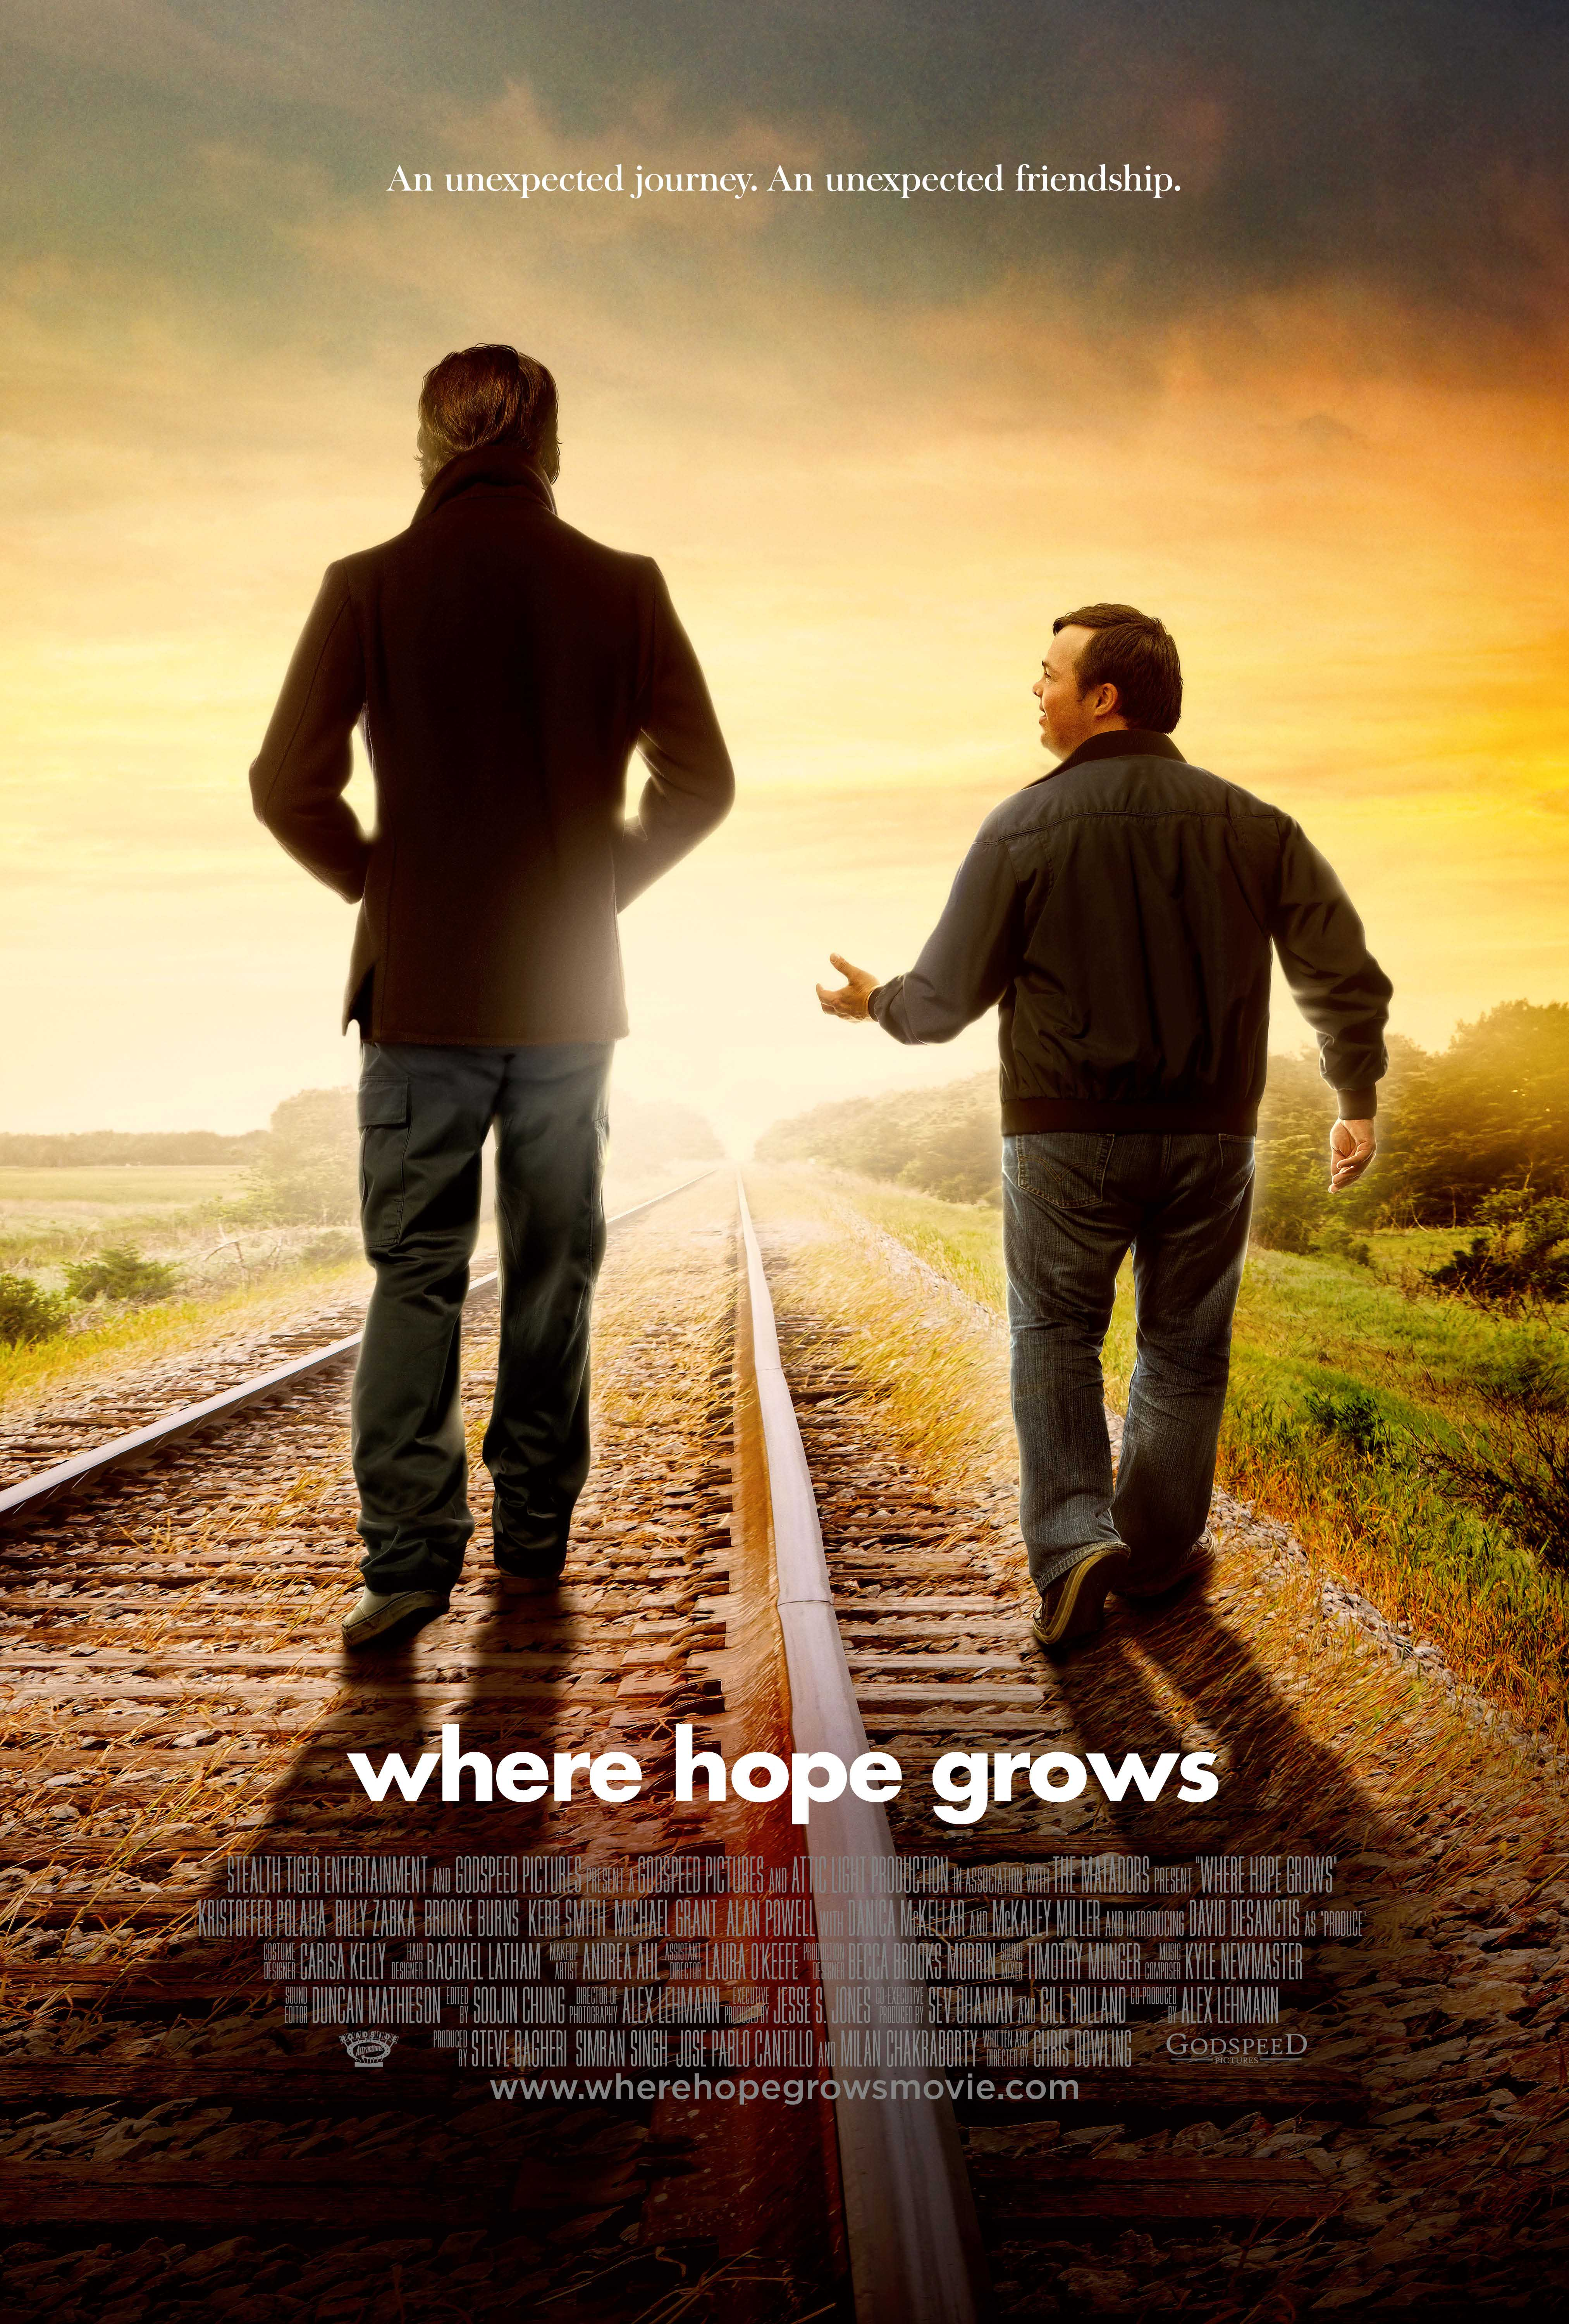 Where Hope Grows Attachment WHERE HOPE GROWS